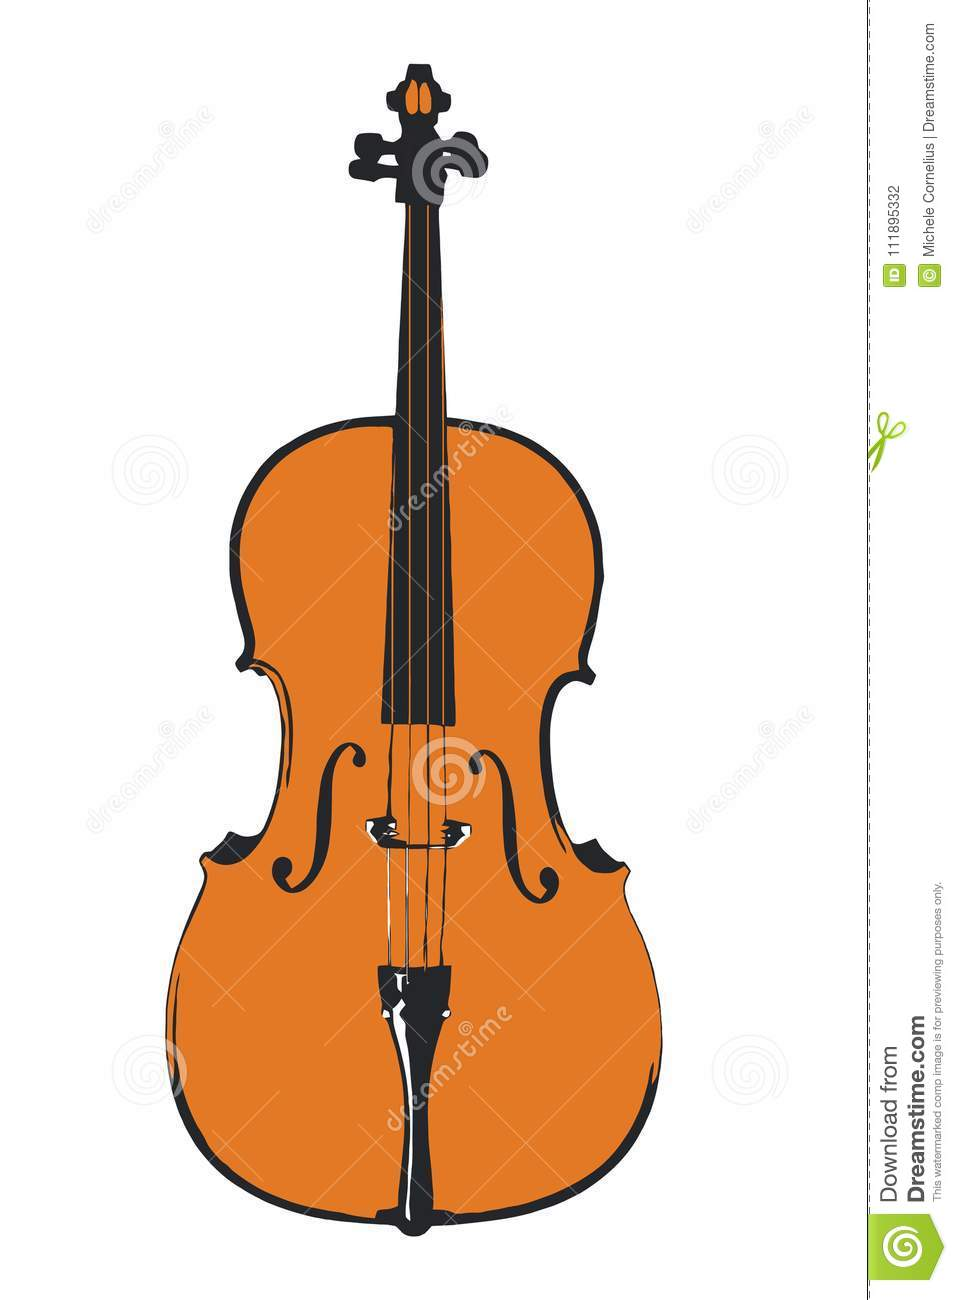 Download Simple Cello Illustration Stock Vector Of Classical